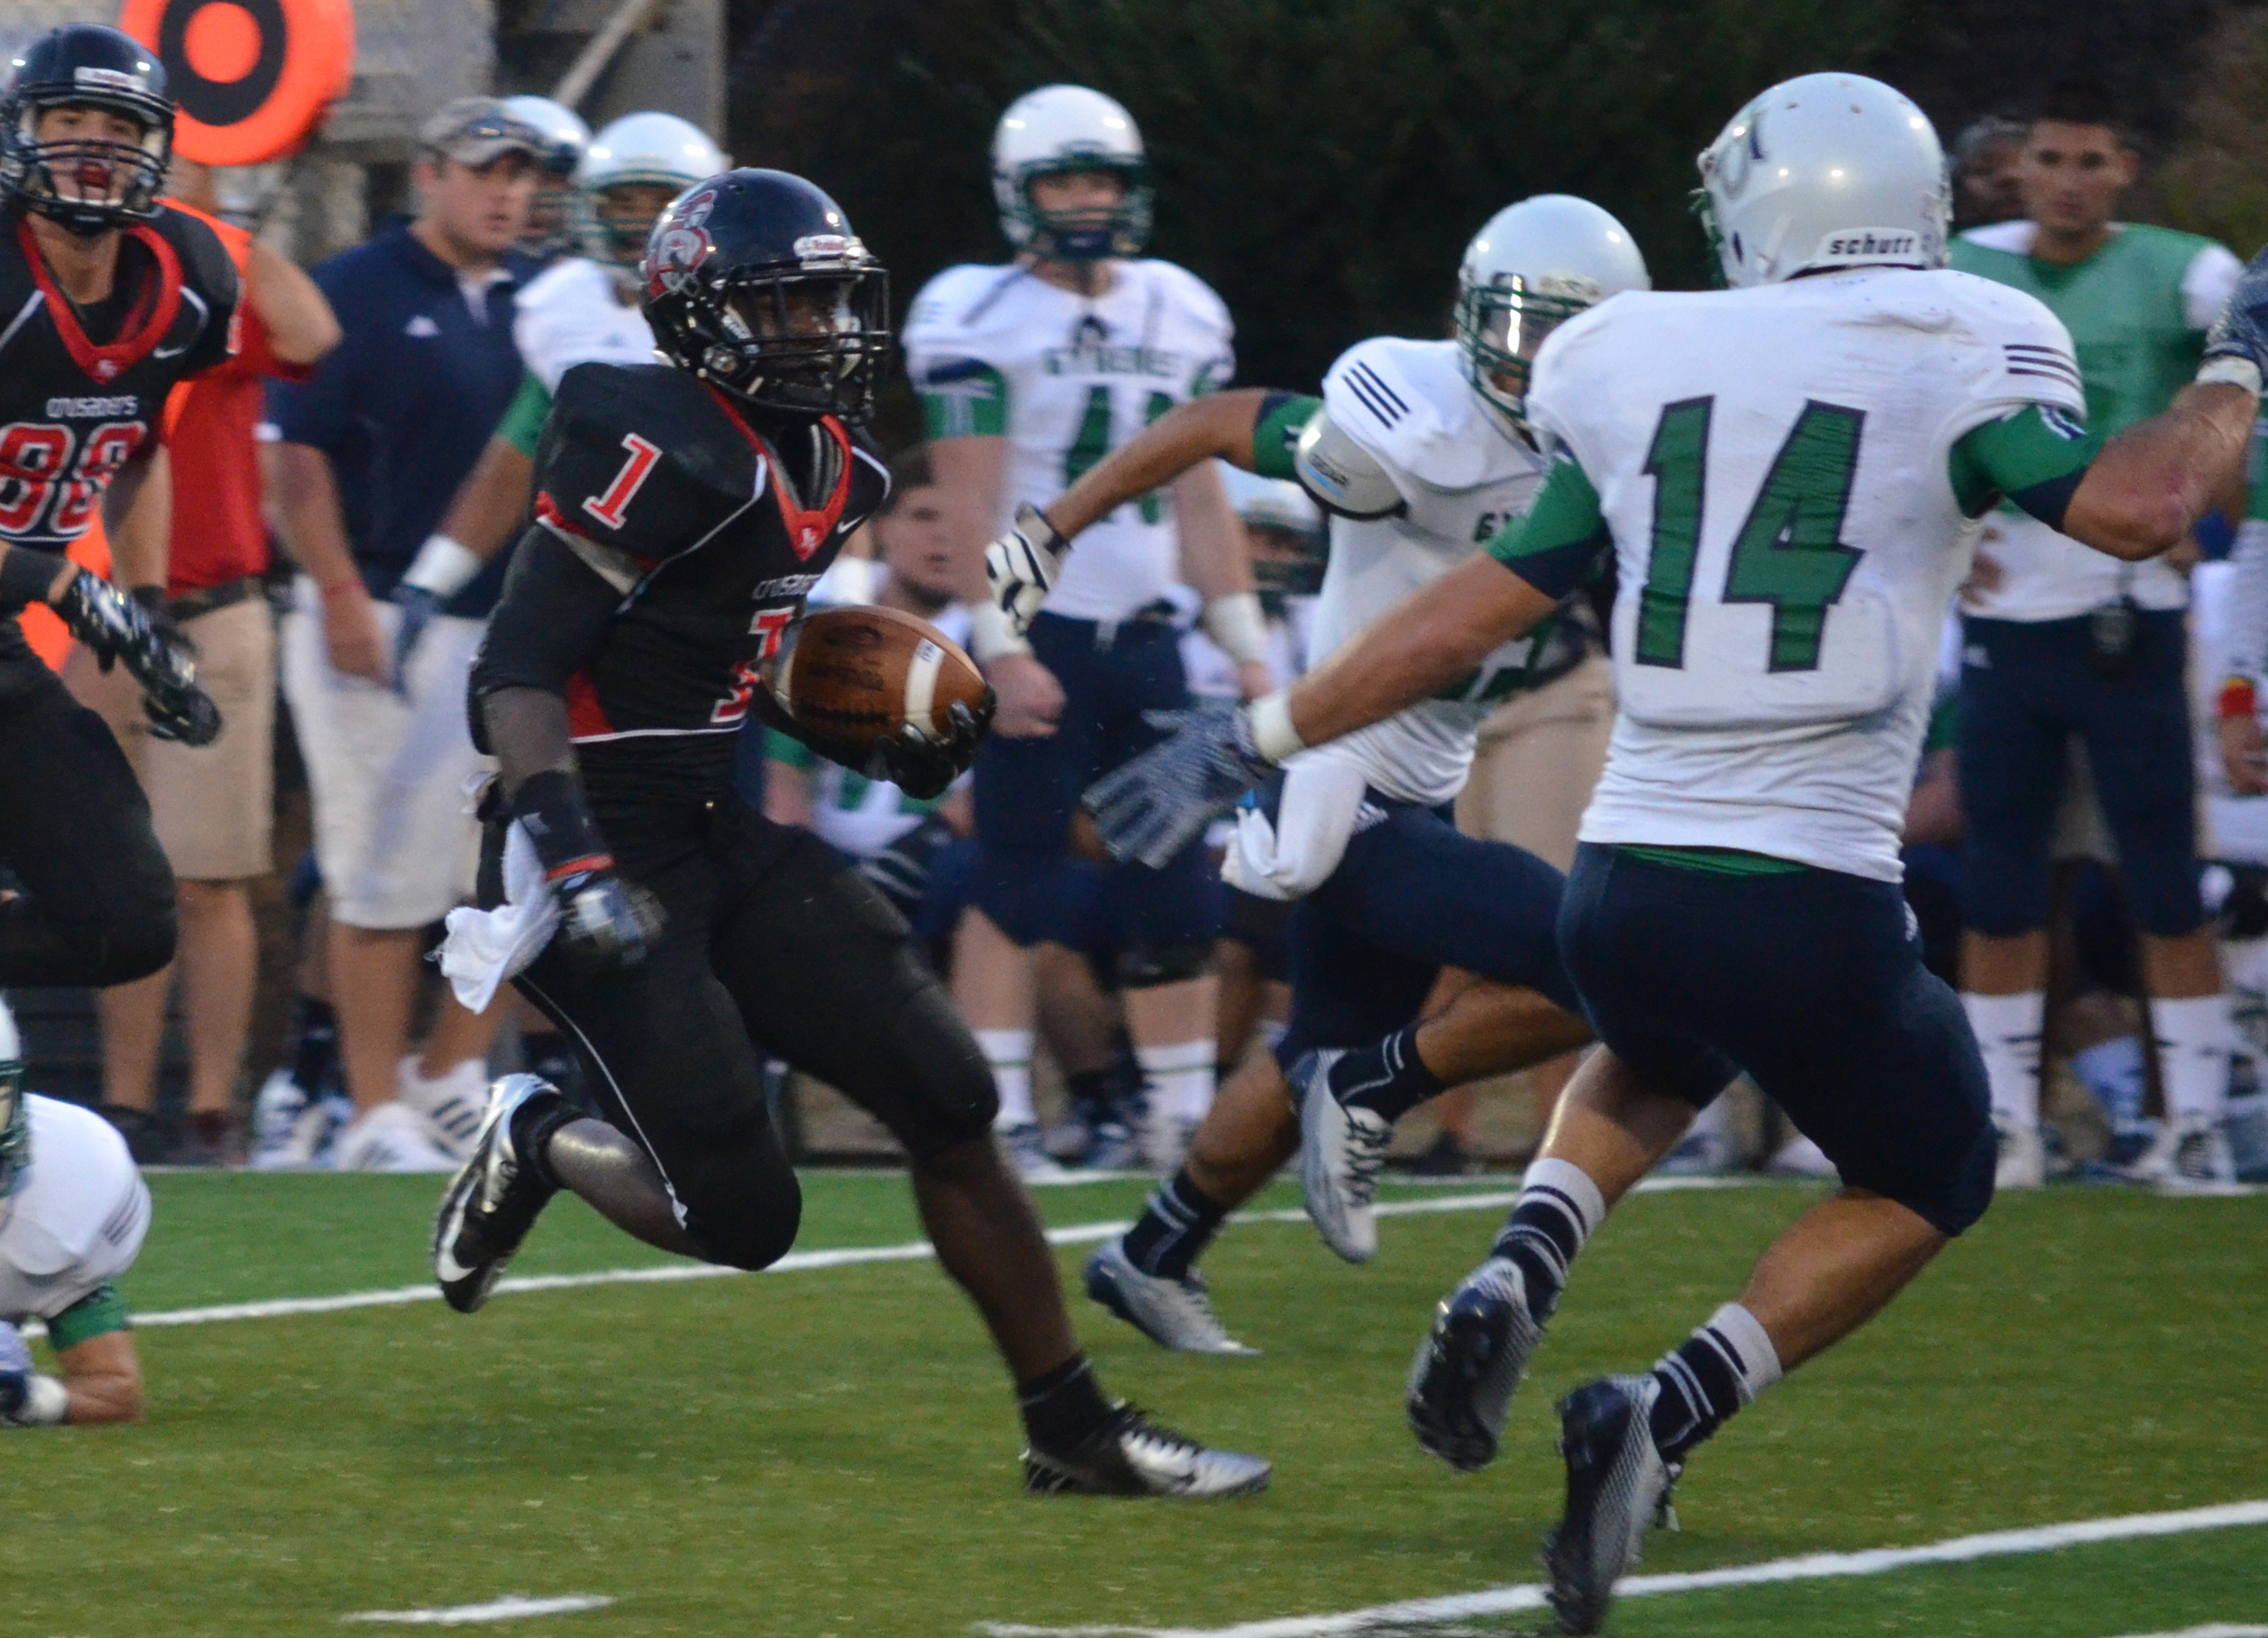 Running Back, Trey Walker, wears out the other team by making them try to tackle him